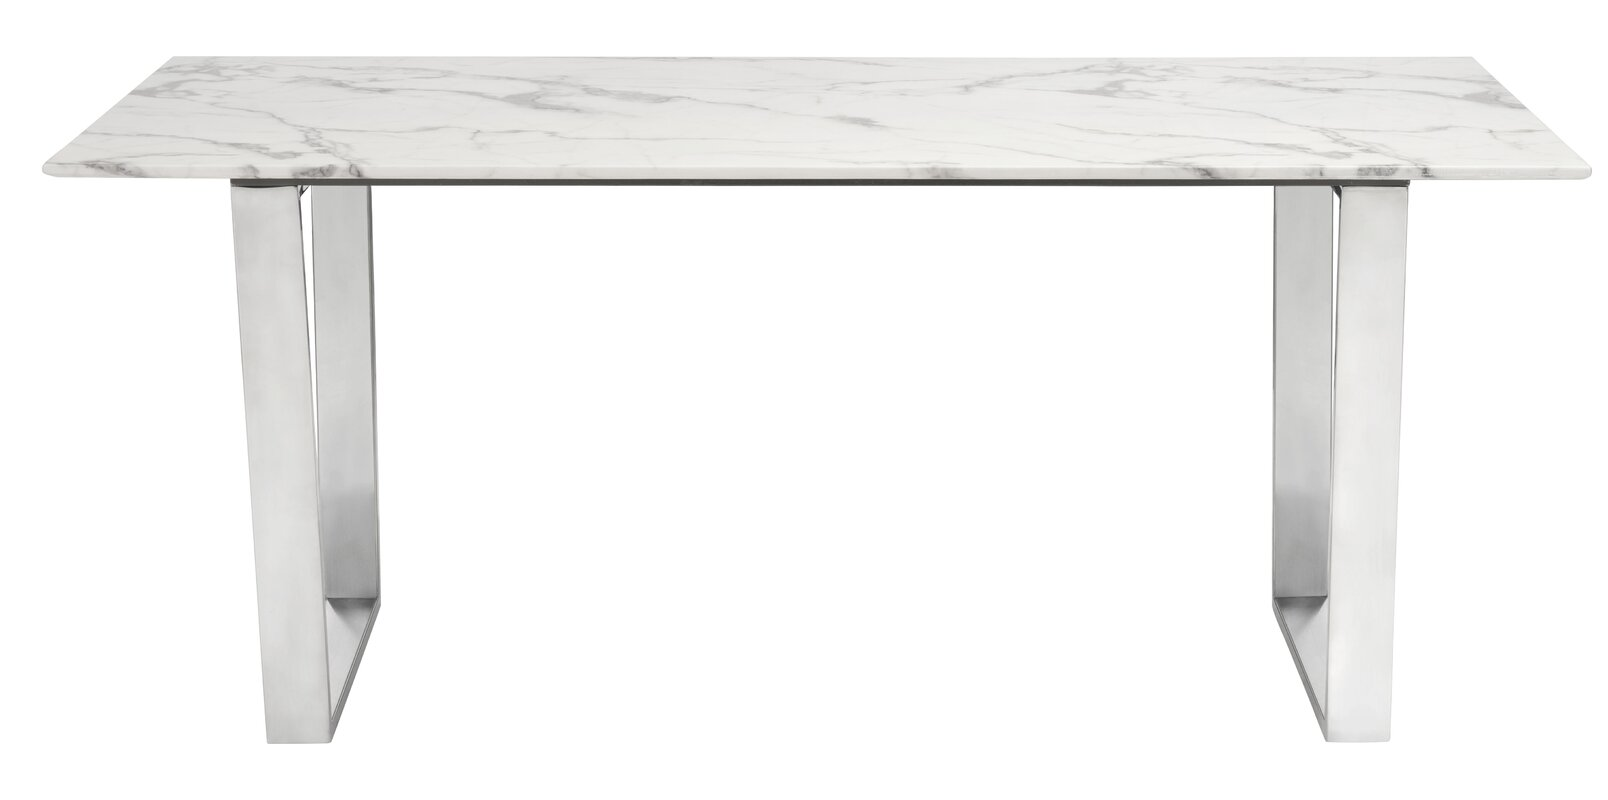 Geelong Dining Table. Wade Logan Geelong Dining Table   Reviews   Wayfair